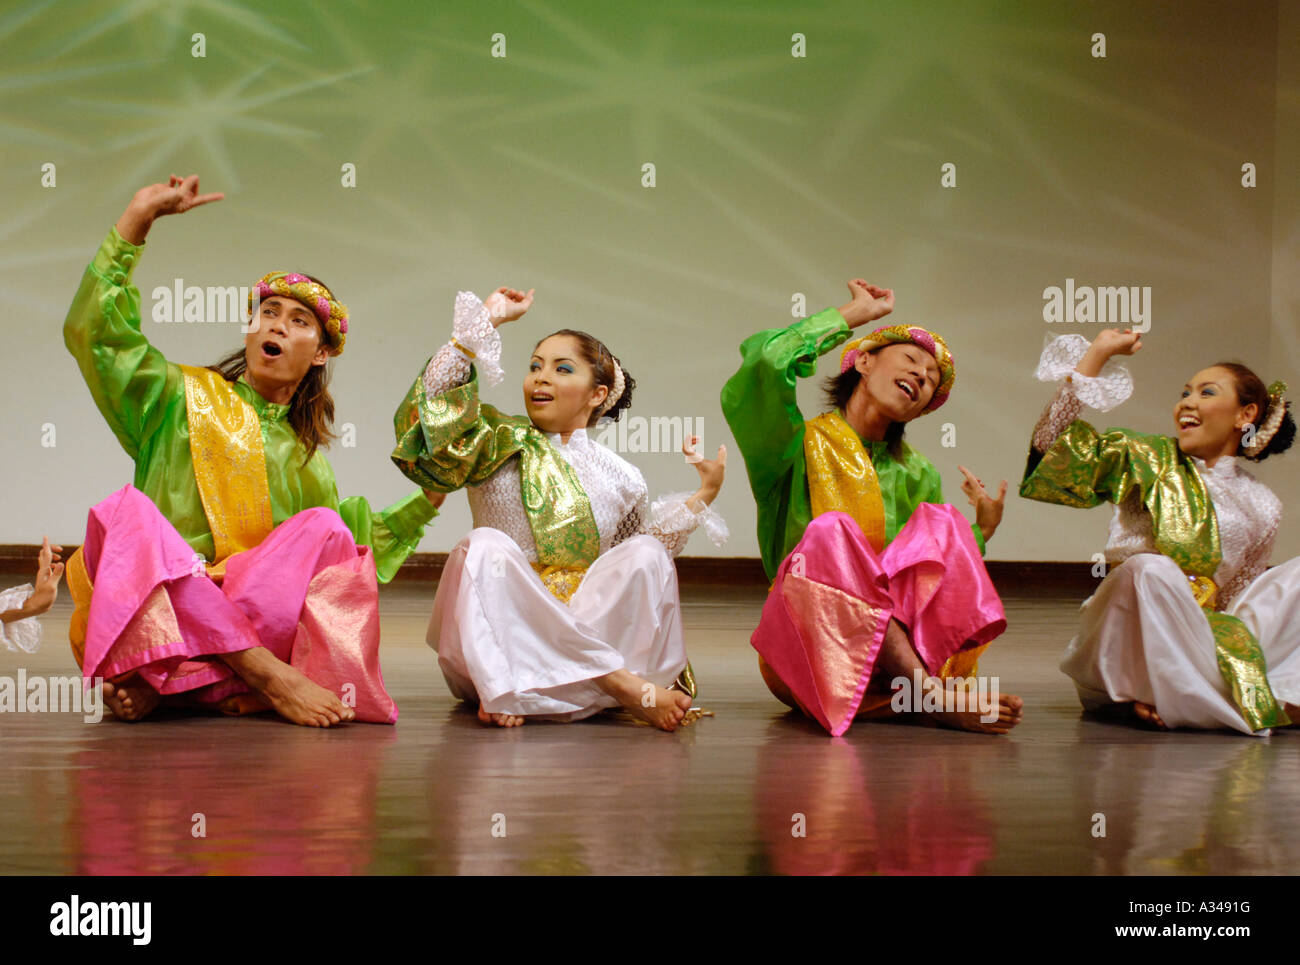 Dancers Performing A Creative Dance That Originated With Malay